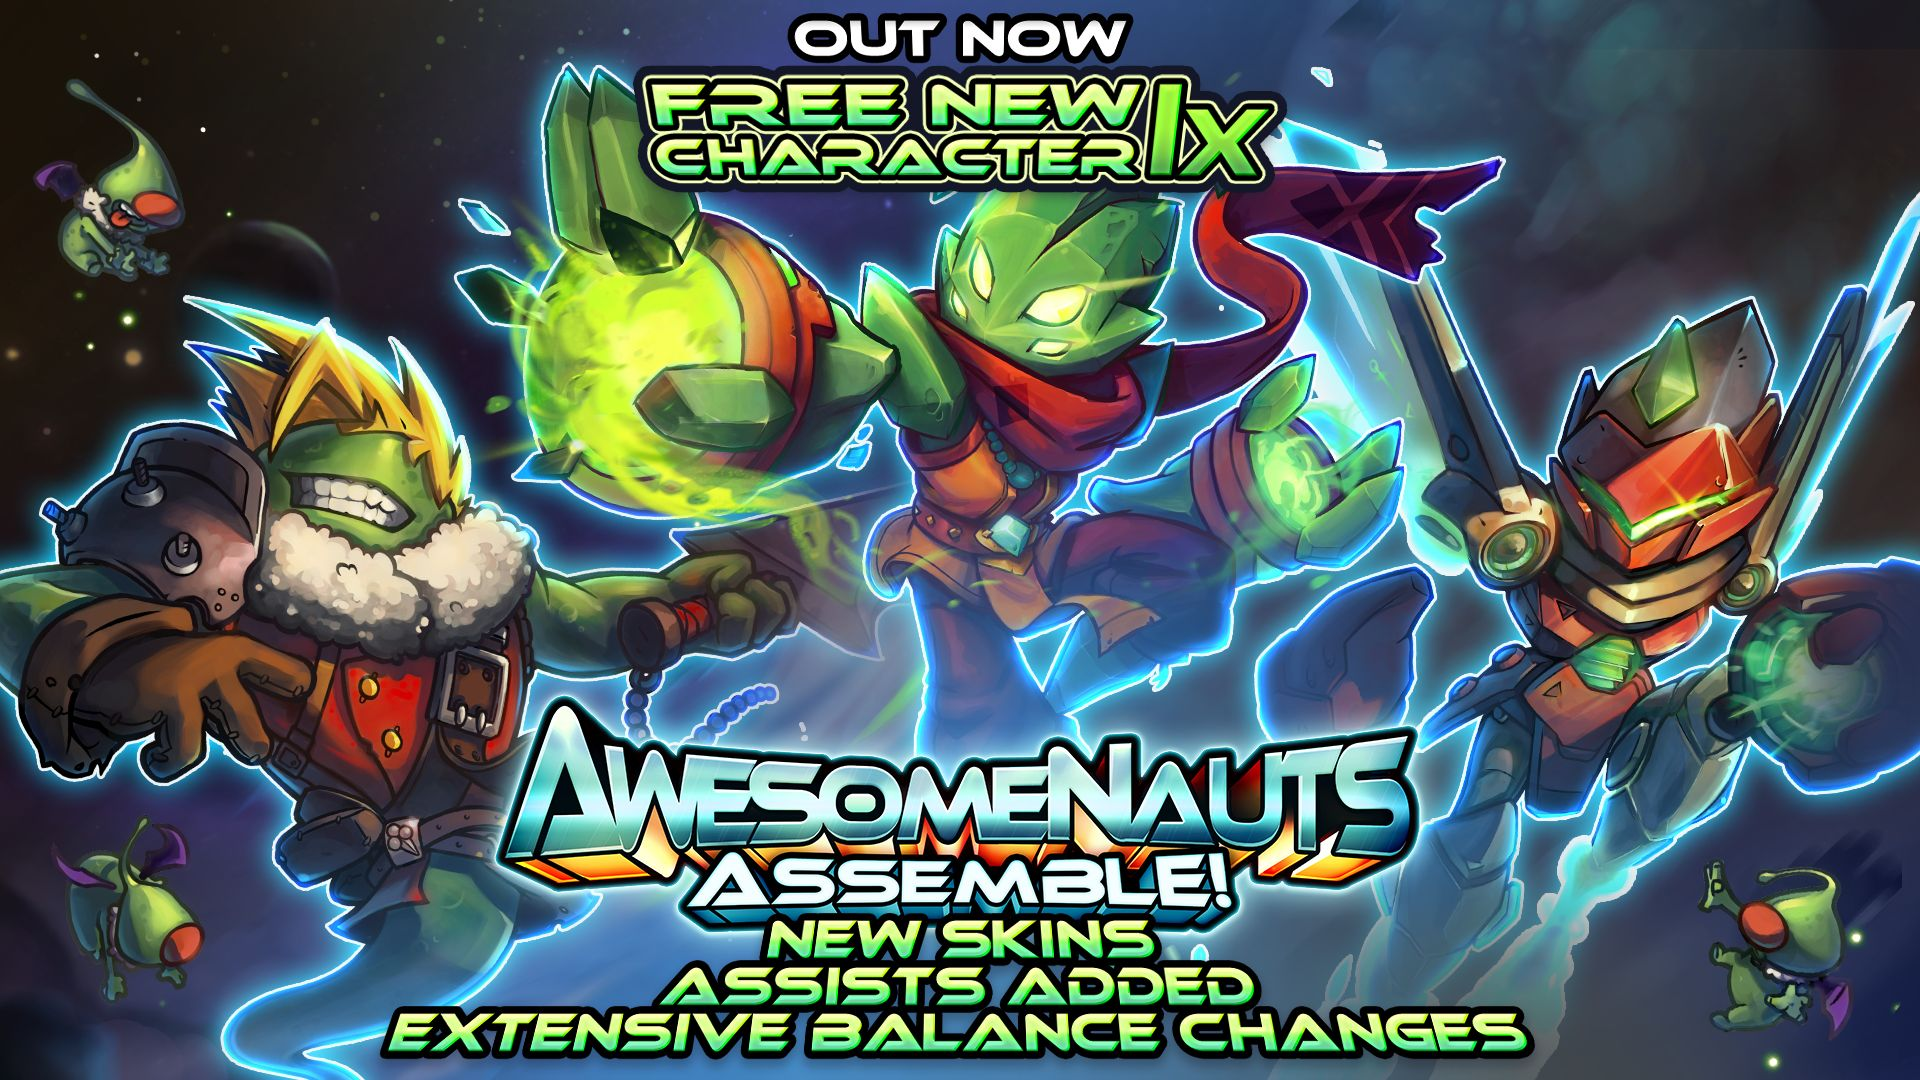 awesomenauts-assemble-update-1-6-out-now